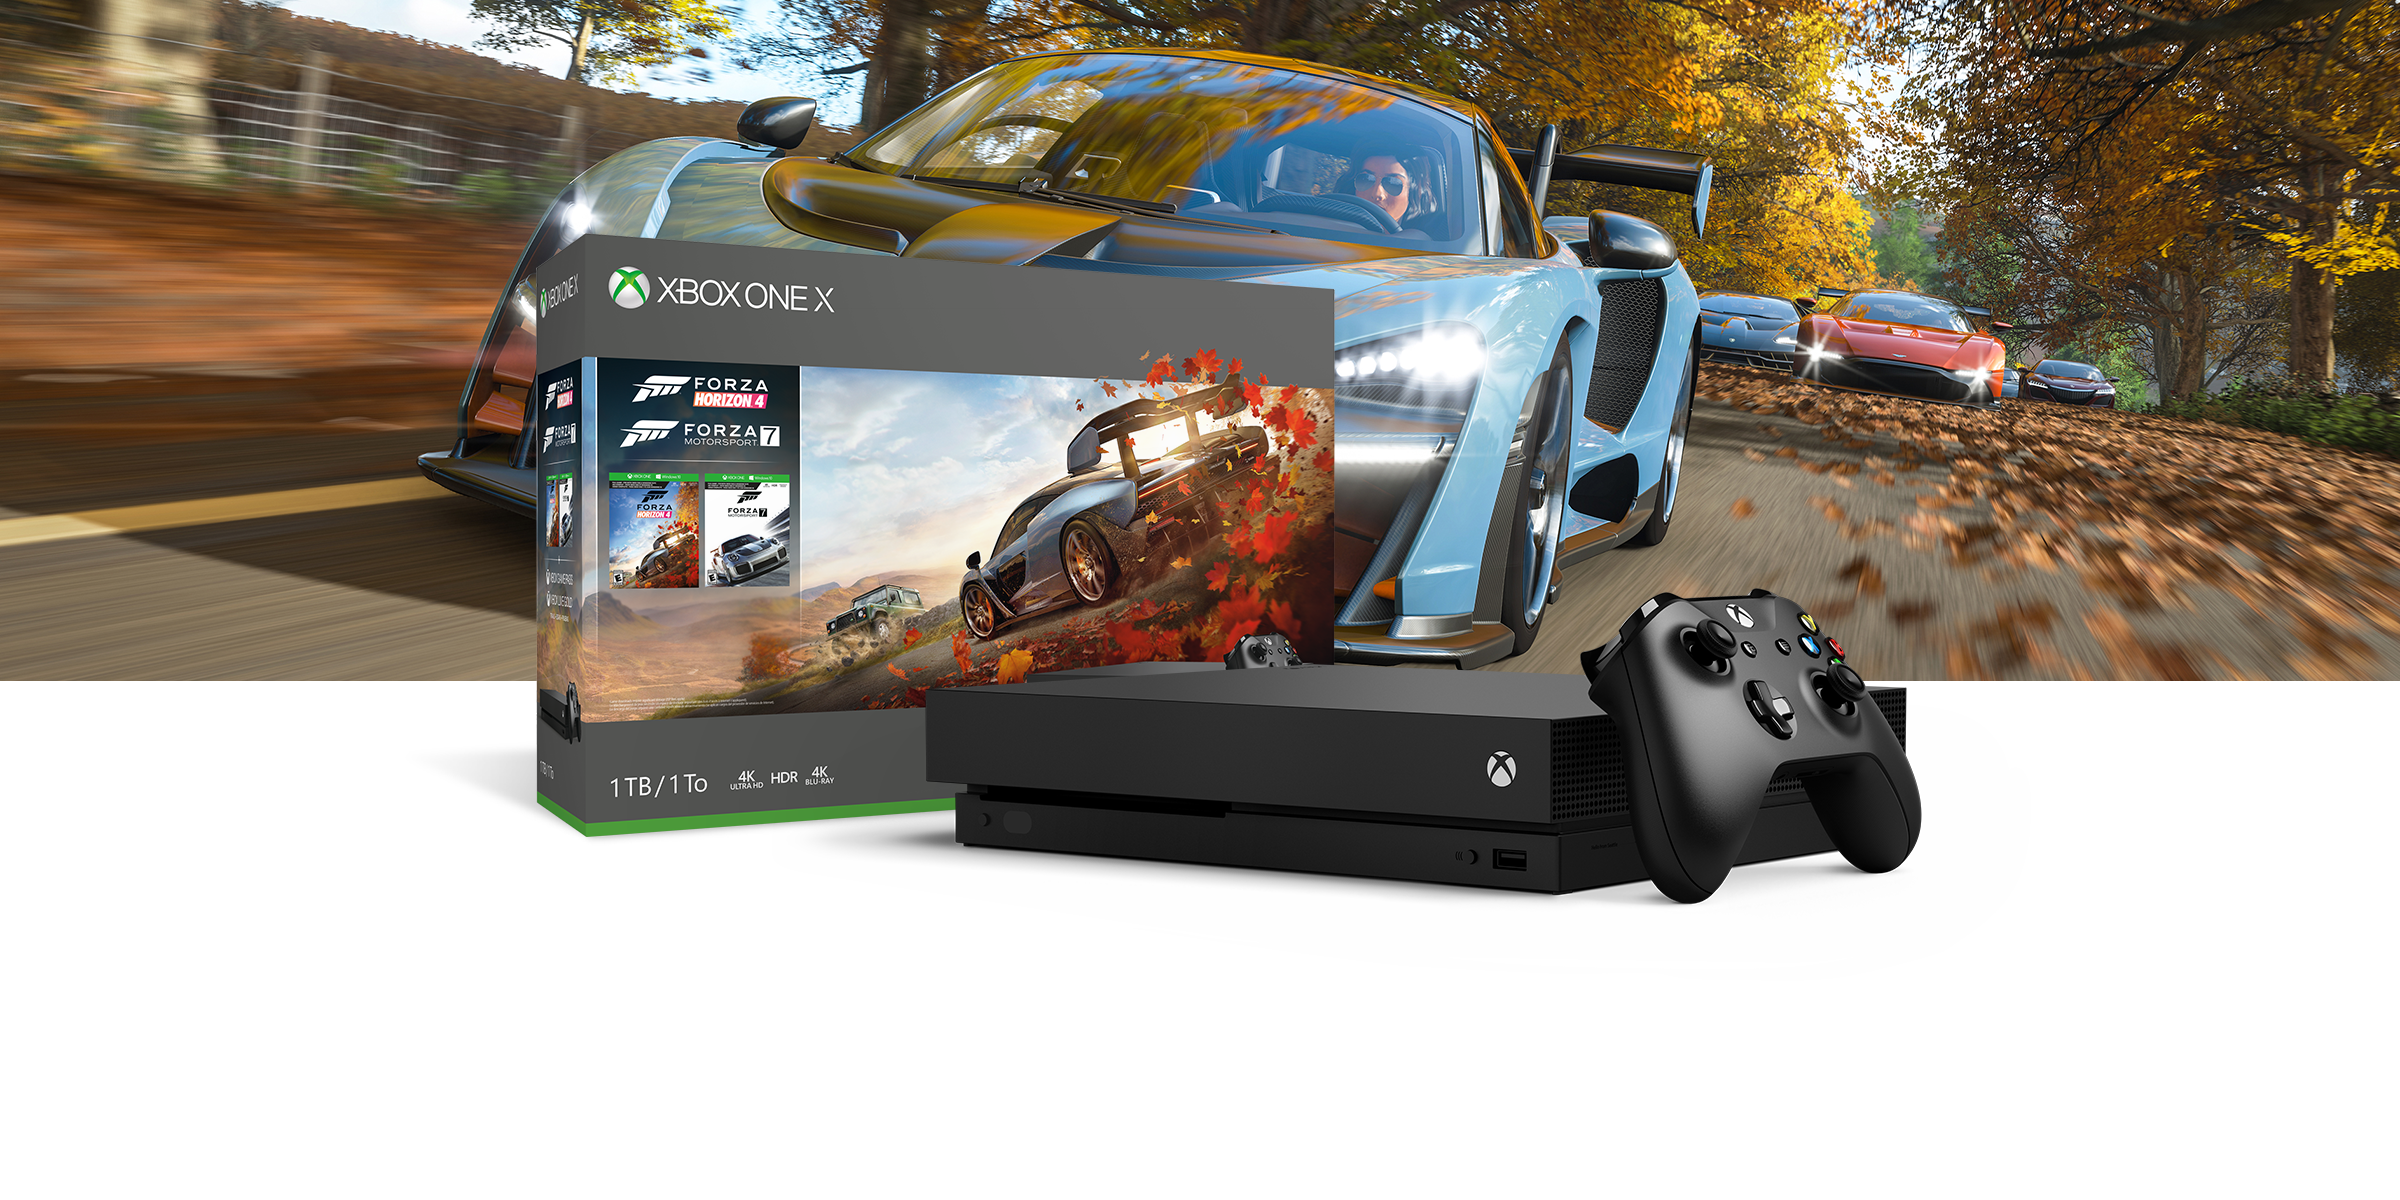 Pack de Xbox One X con Forza horizon 4